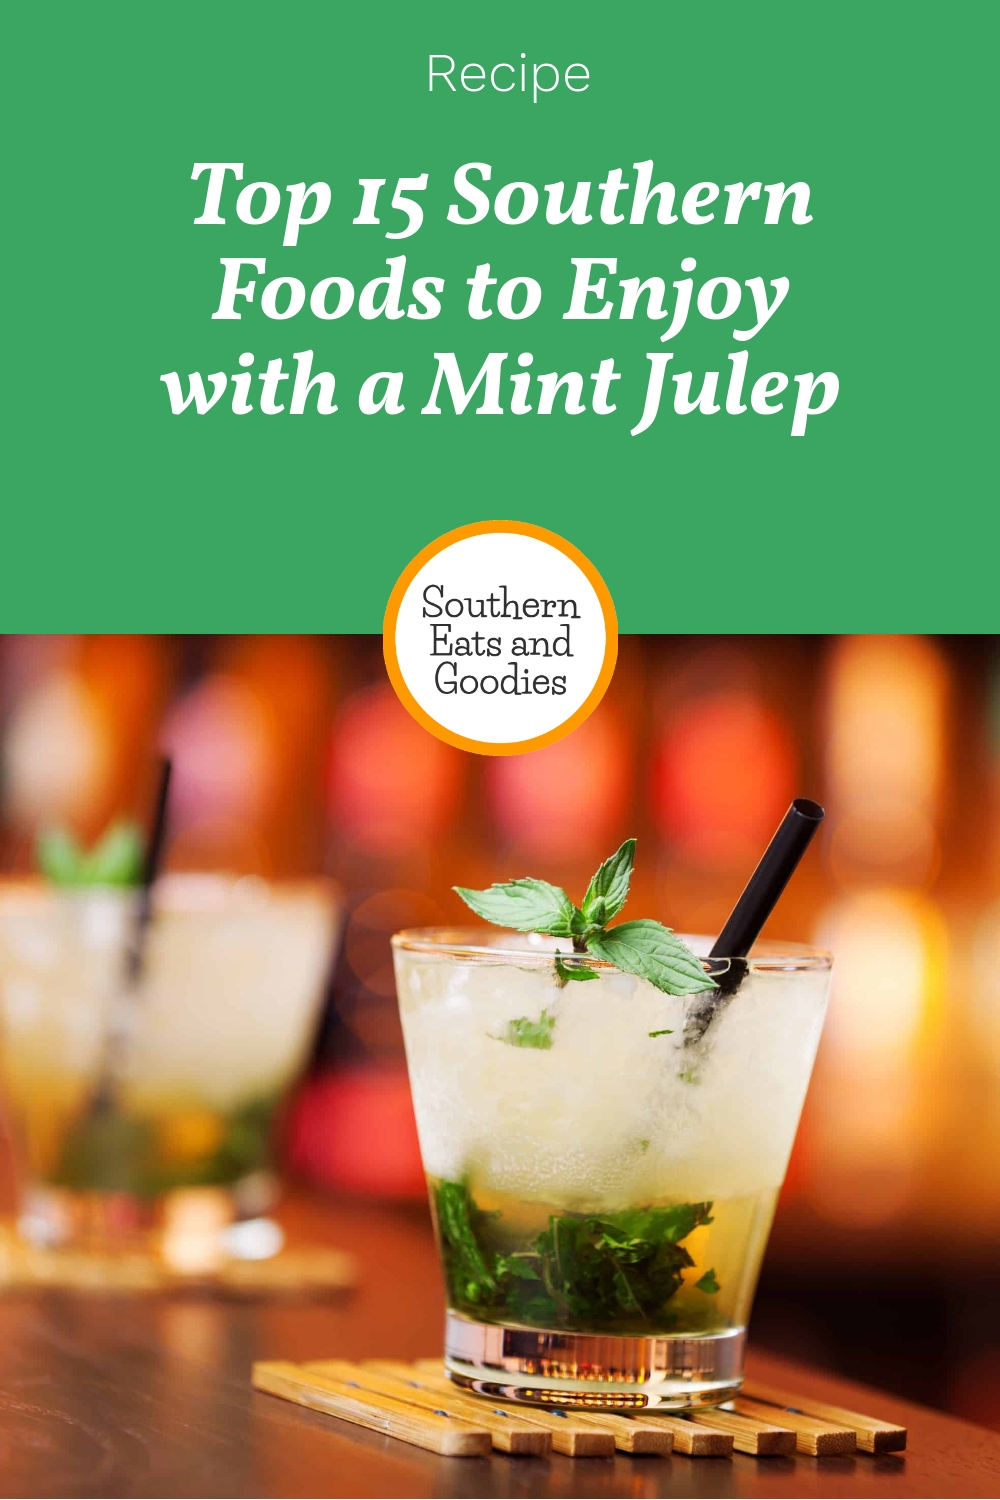 Top 15 Southern Foods to Enjoy with a Mint Julep